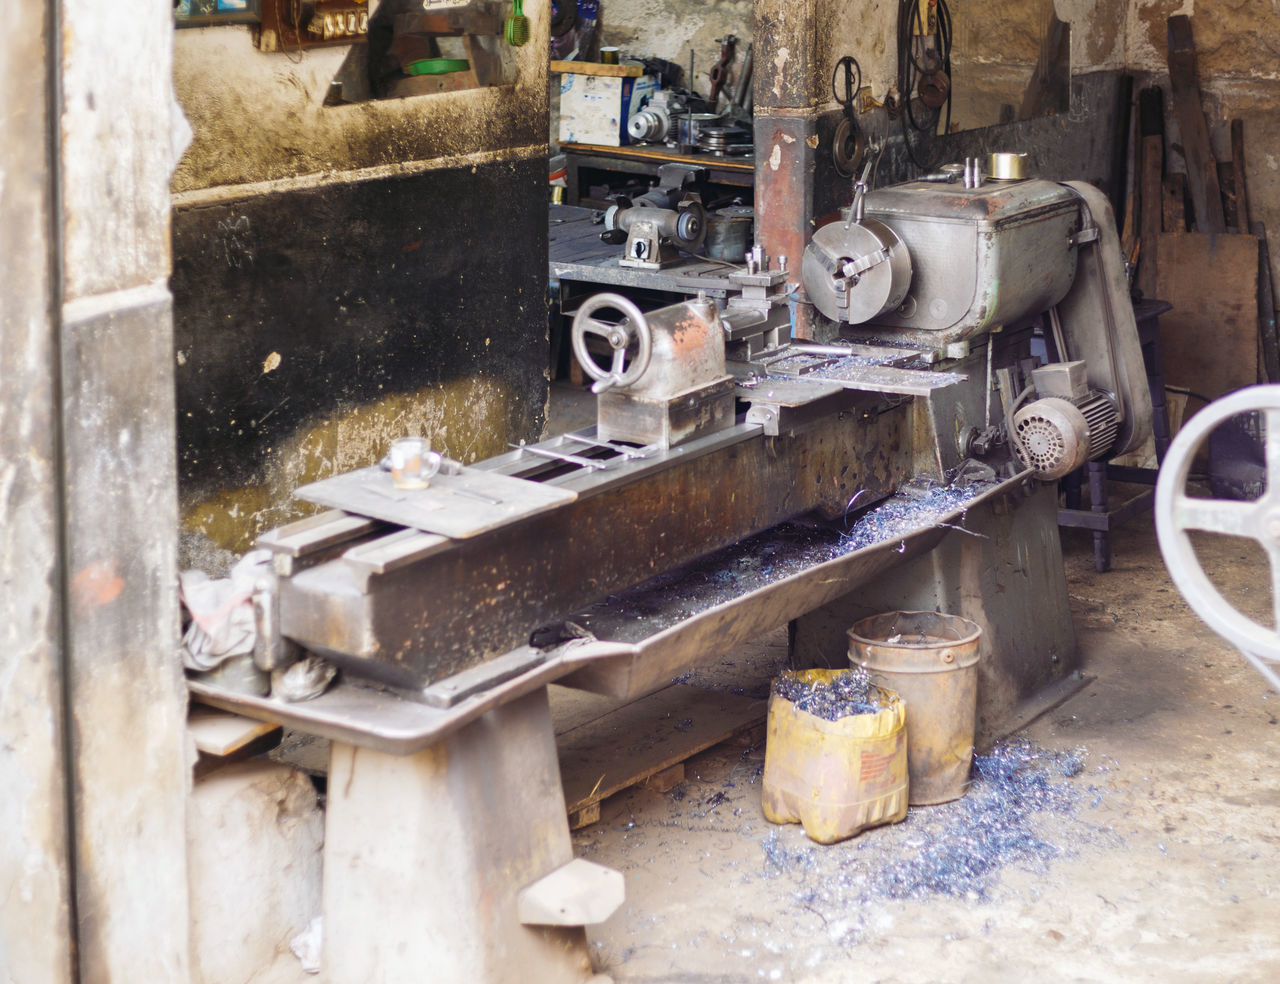 Cutting Indoors  Industrial Industrial Area Industry Inside Iron Manufacturing Metal Metal Industry Metallic Metalworking No People Old Power Production Small Stainless Steel  Turning Turning Machin Turning Machining Used Workshop